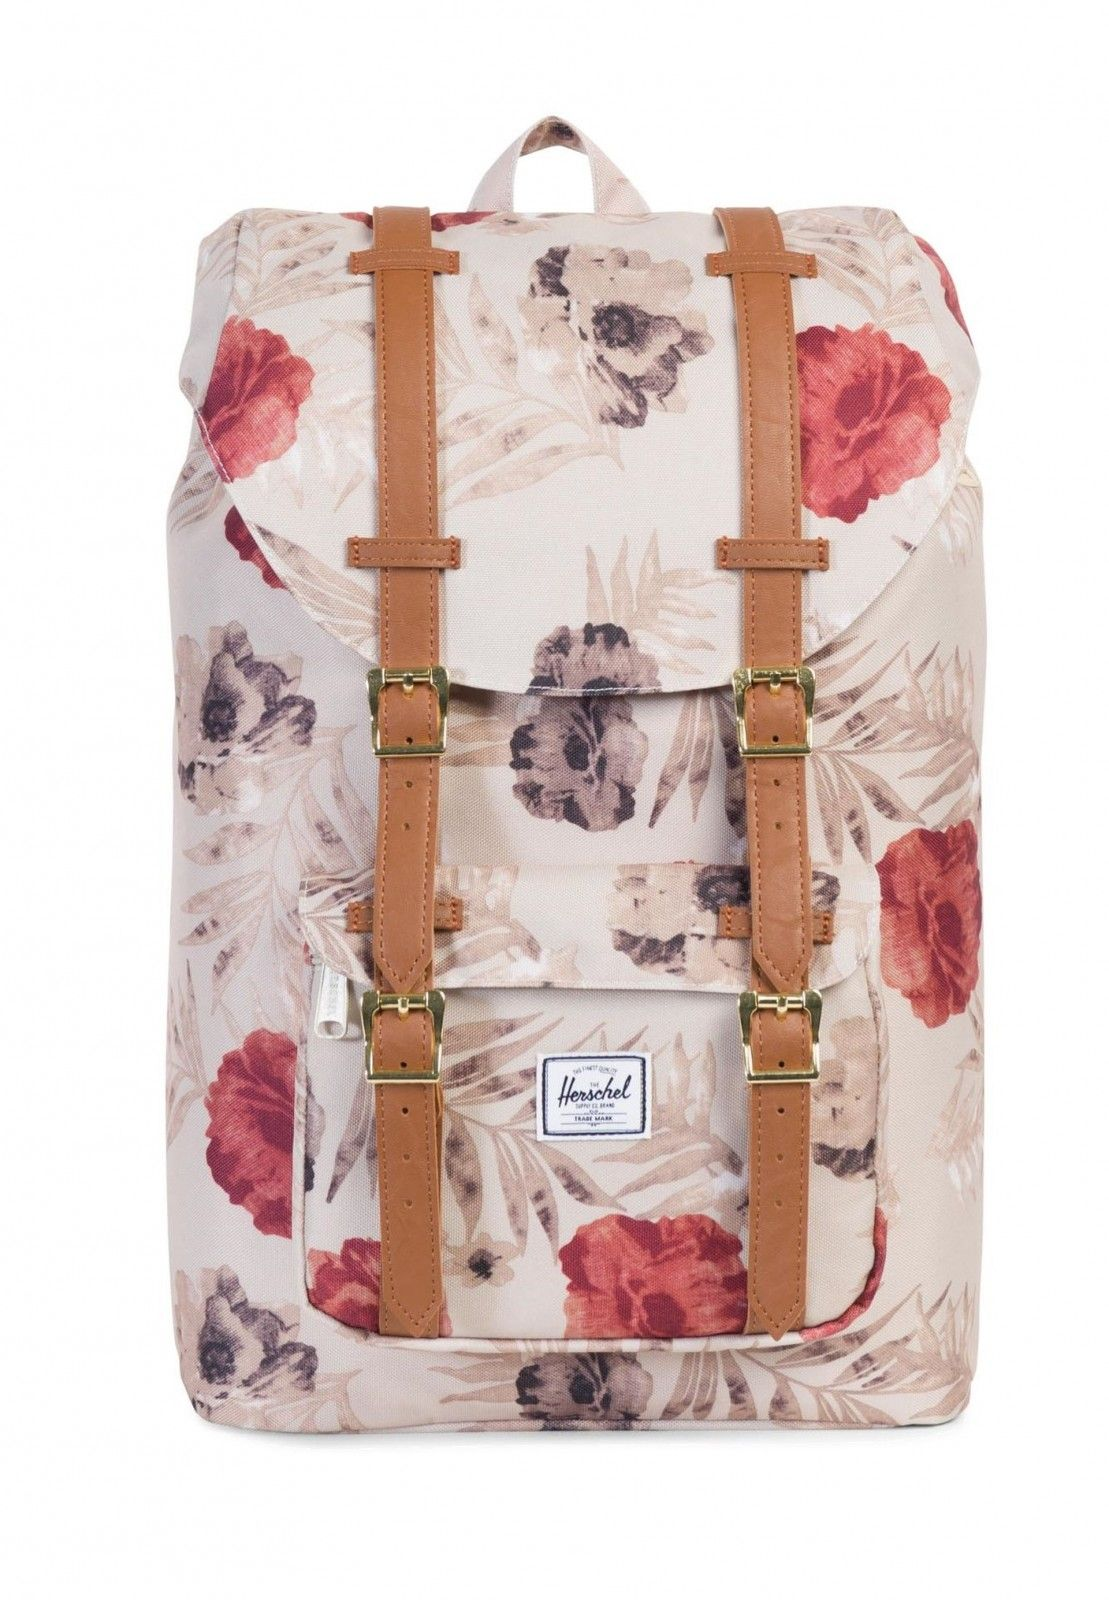 34a6dec6f05 modeherz ♥  Herschel Little America Mid-Volume Backpack Pelican Floria   Tan